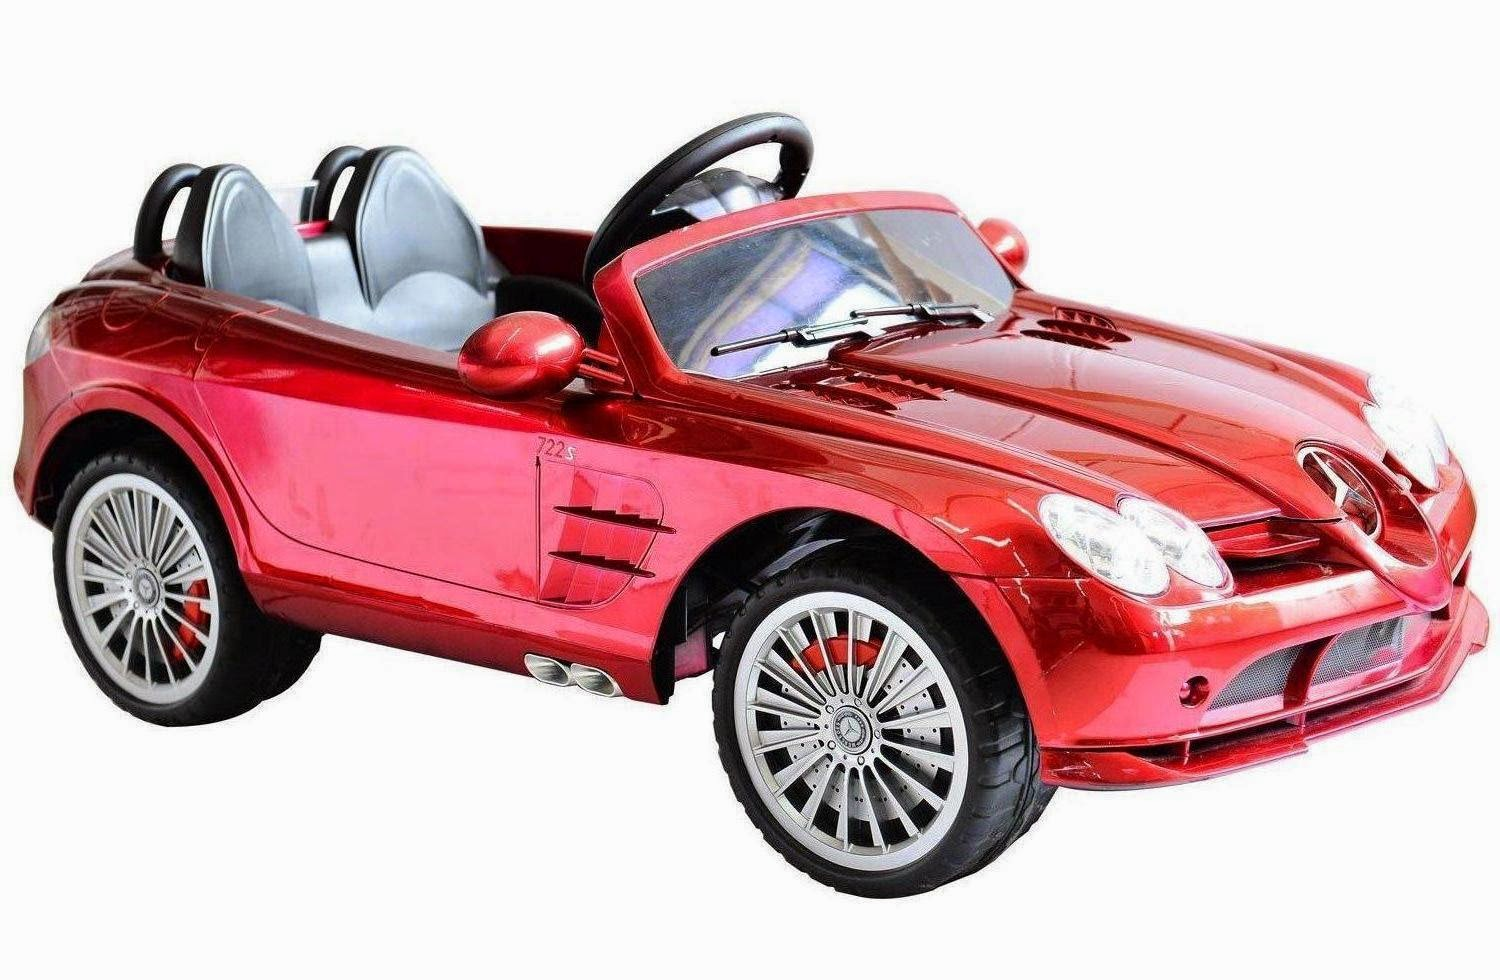 mercedes benz 722s kids 12v electric ride on toy car w parent remote control discount price